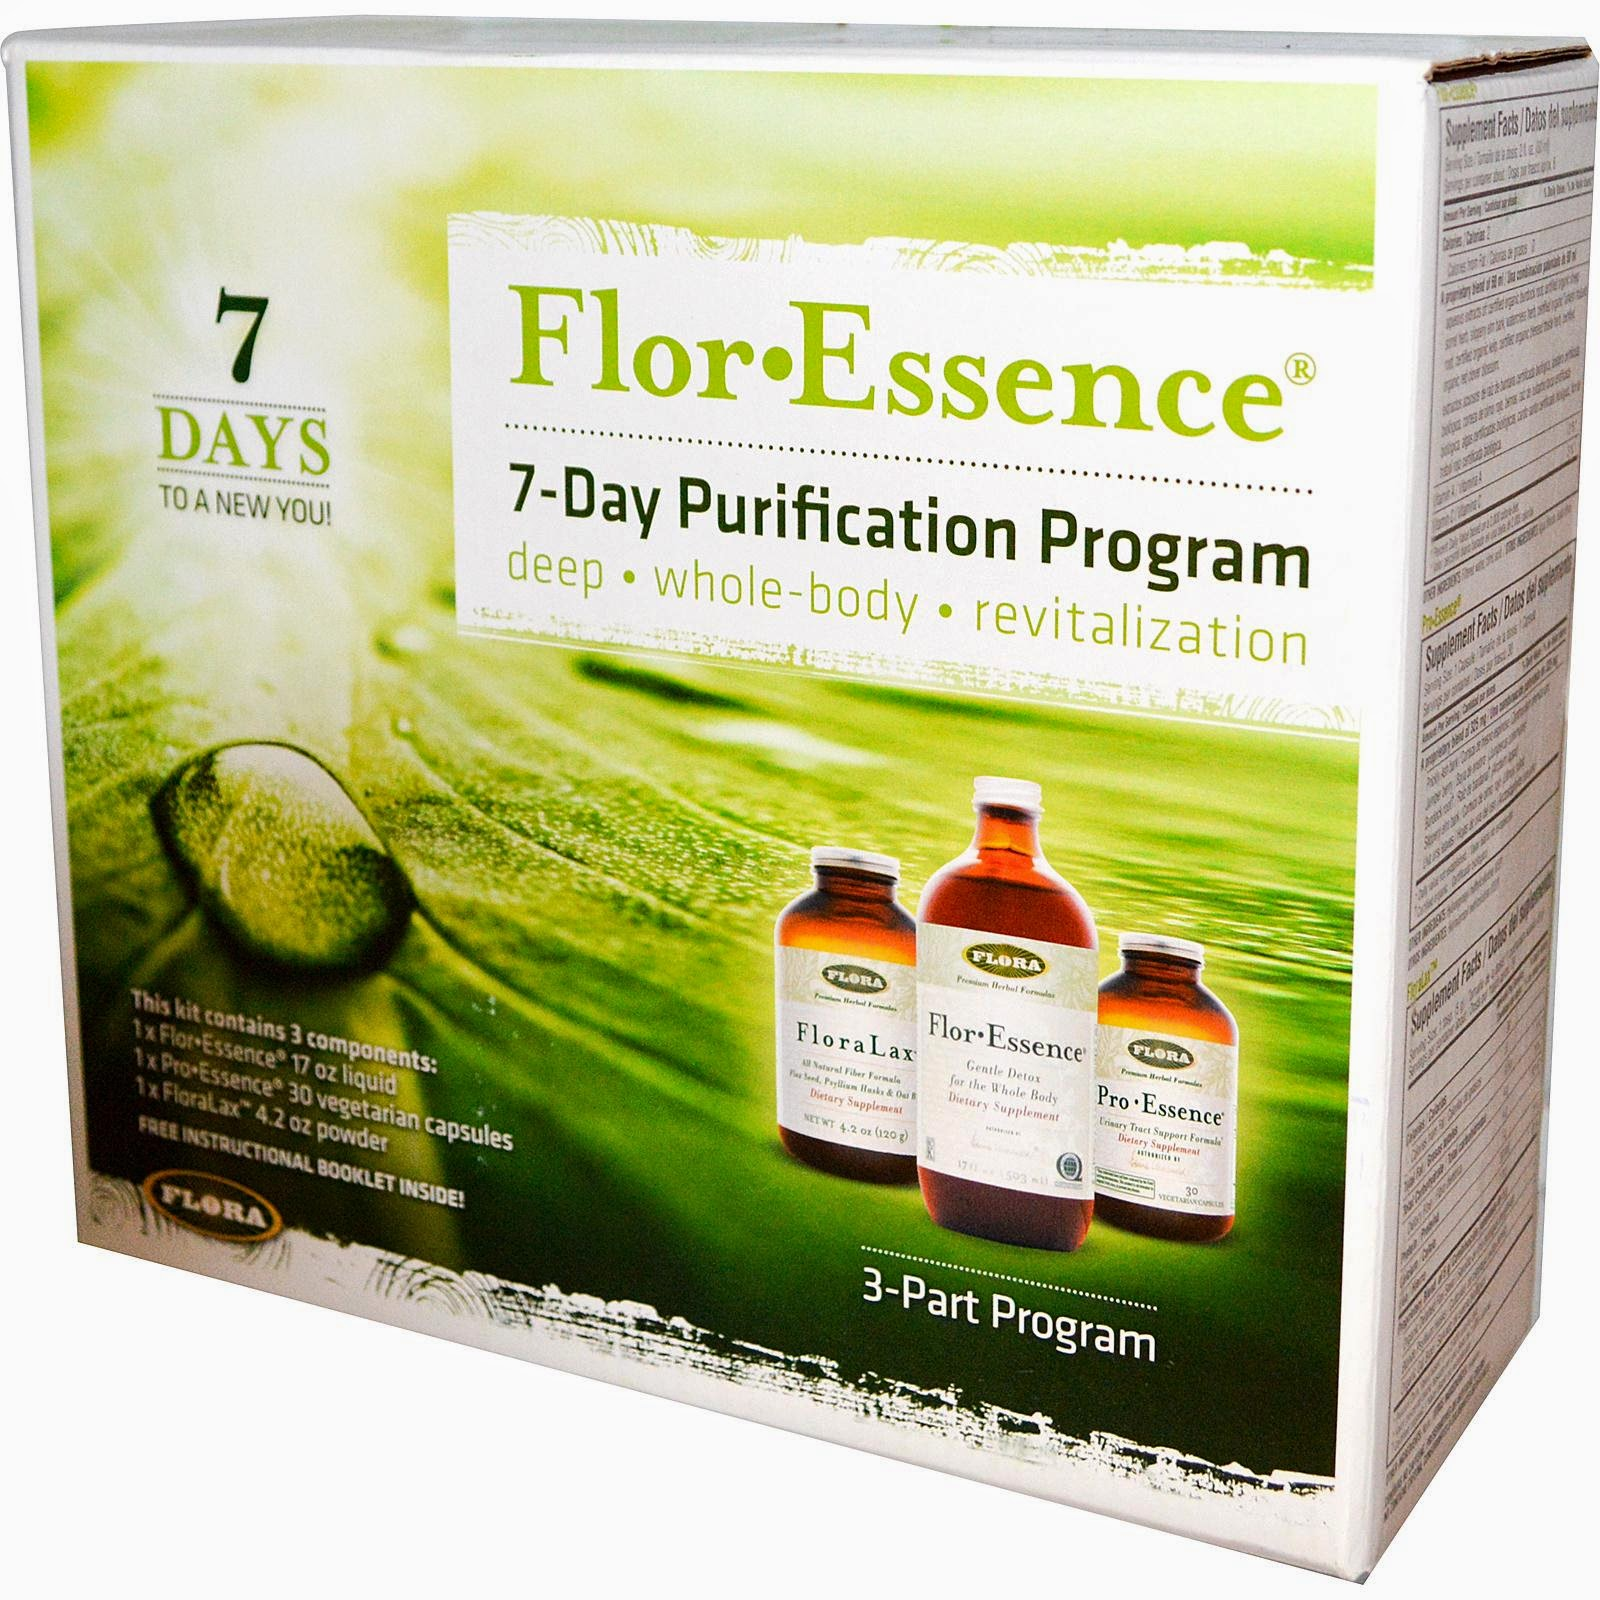 http://www.iherb.com/Flora-Flor-Essence-7-Day-Purification-Program-3-Part-Program/23928